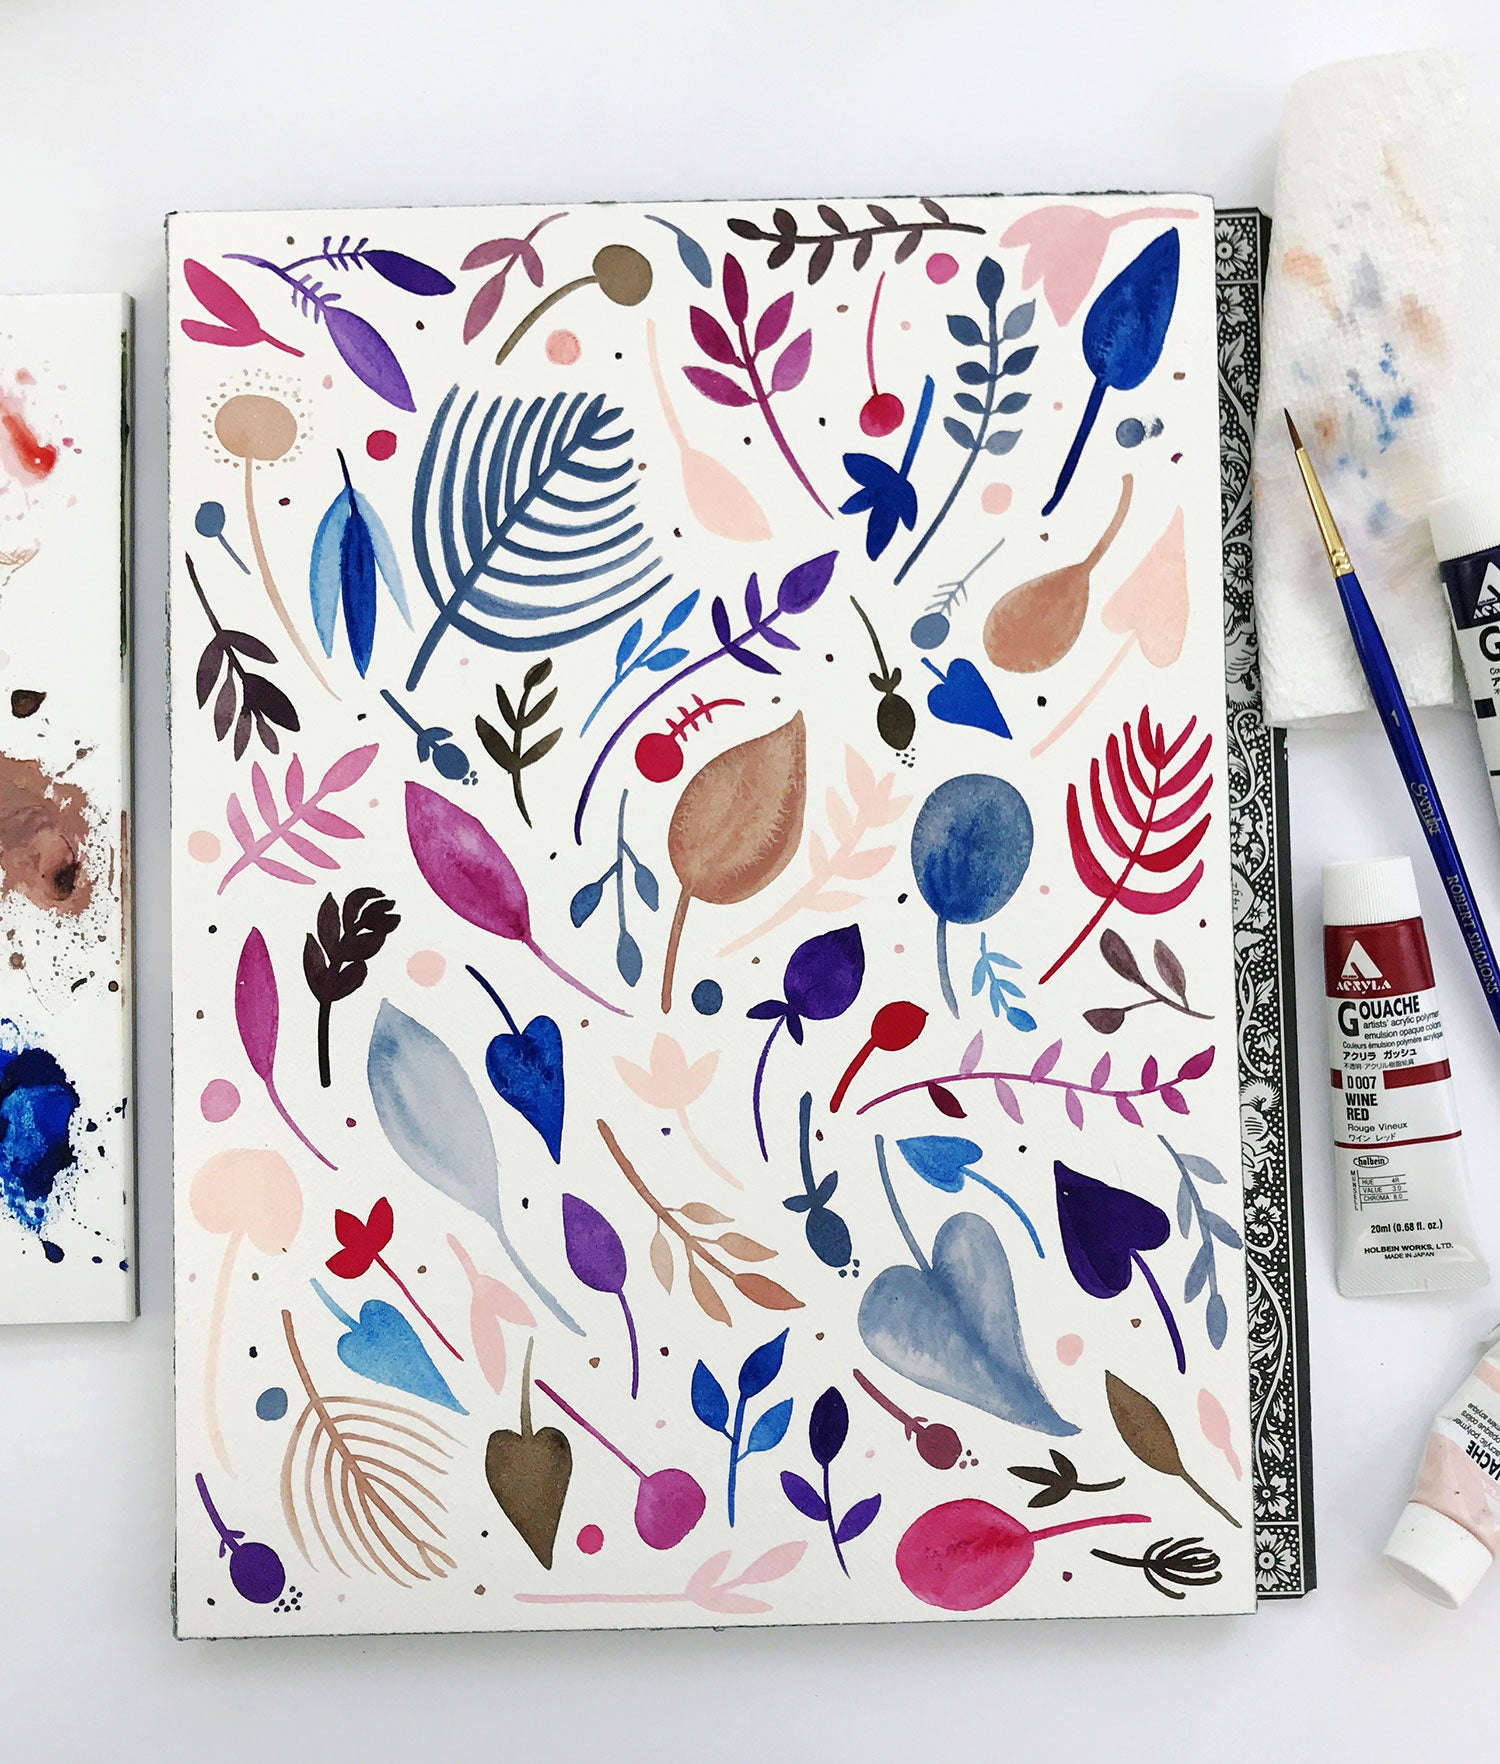 Violet and navy and pink neutral leaf botanical pattern painting by Erika Firm